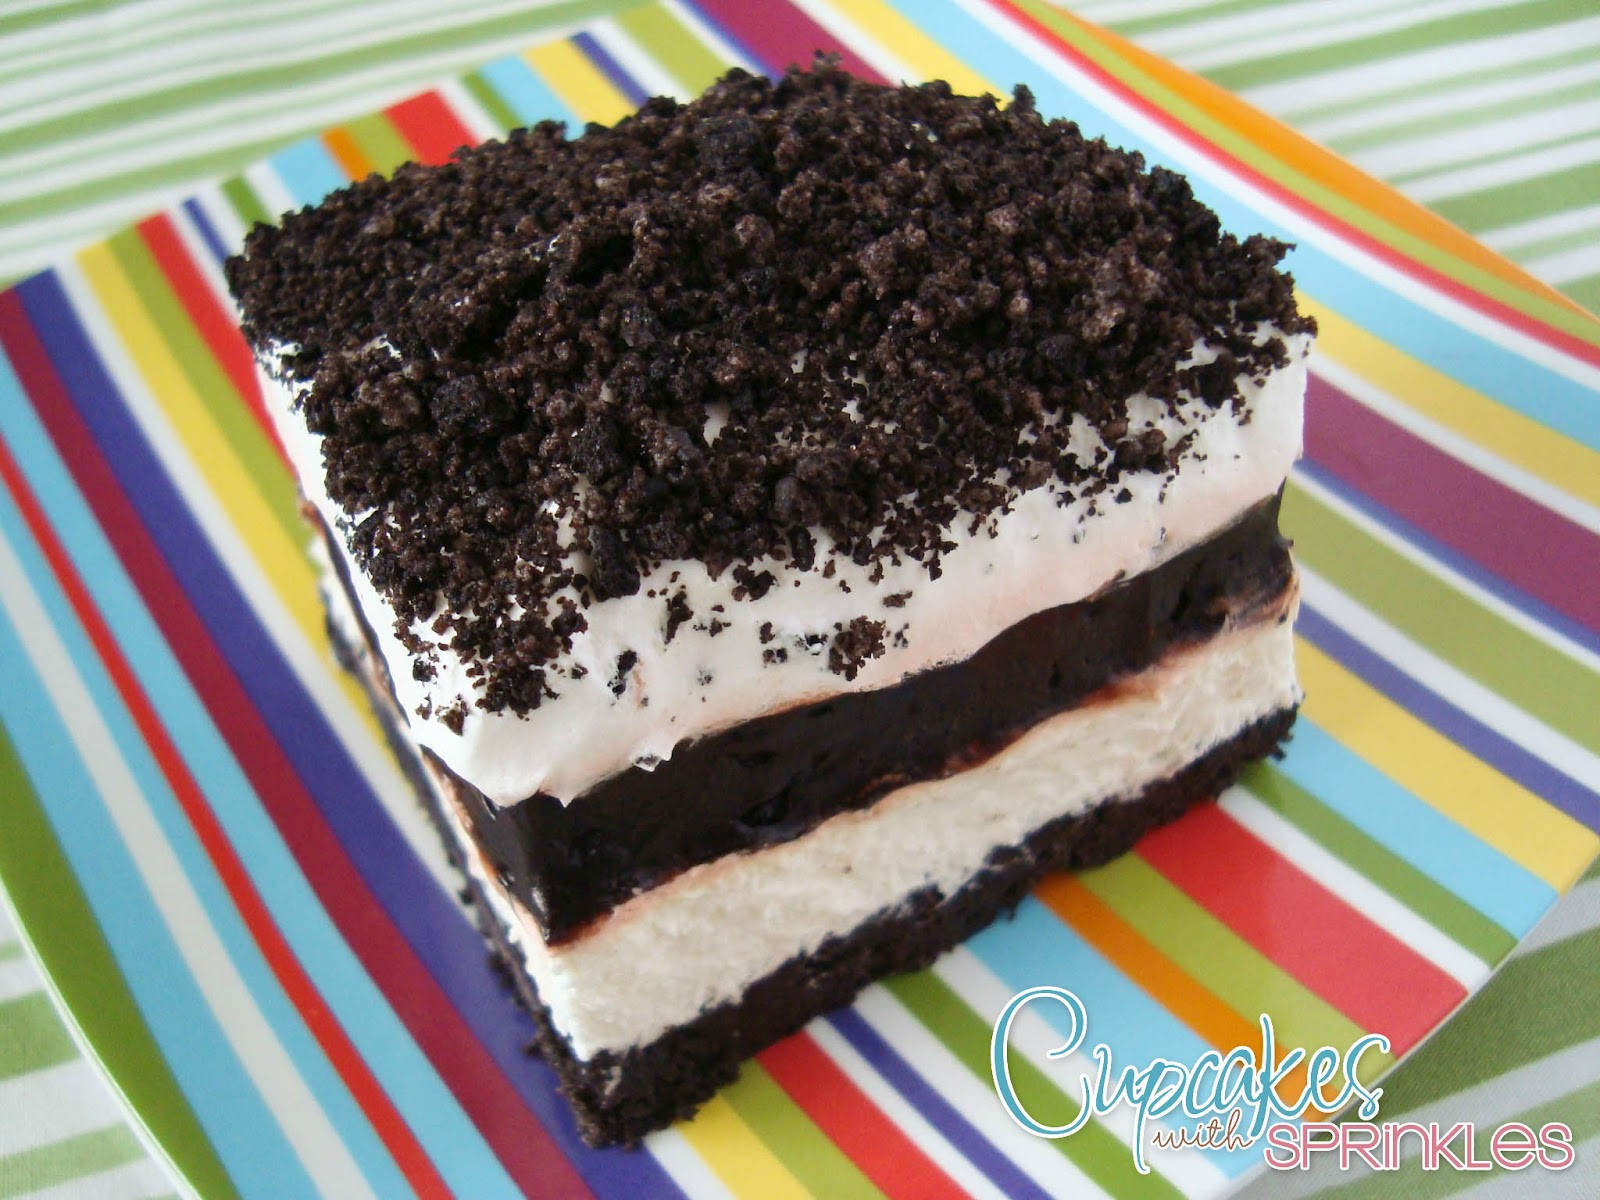 Oreo Dessert Recipes  Cupcakes with Sprinkles Oreo Pudding Layered Dessert